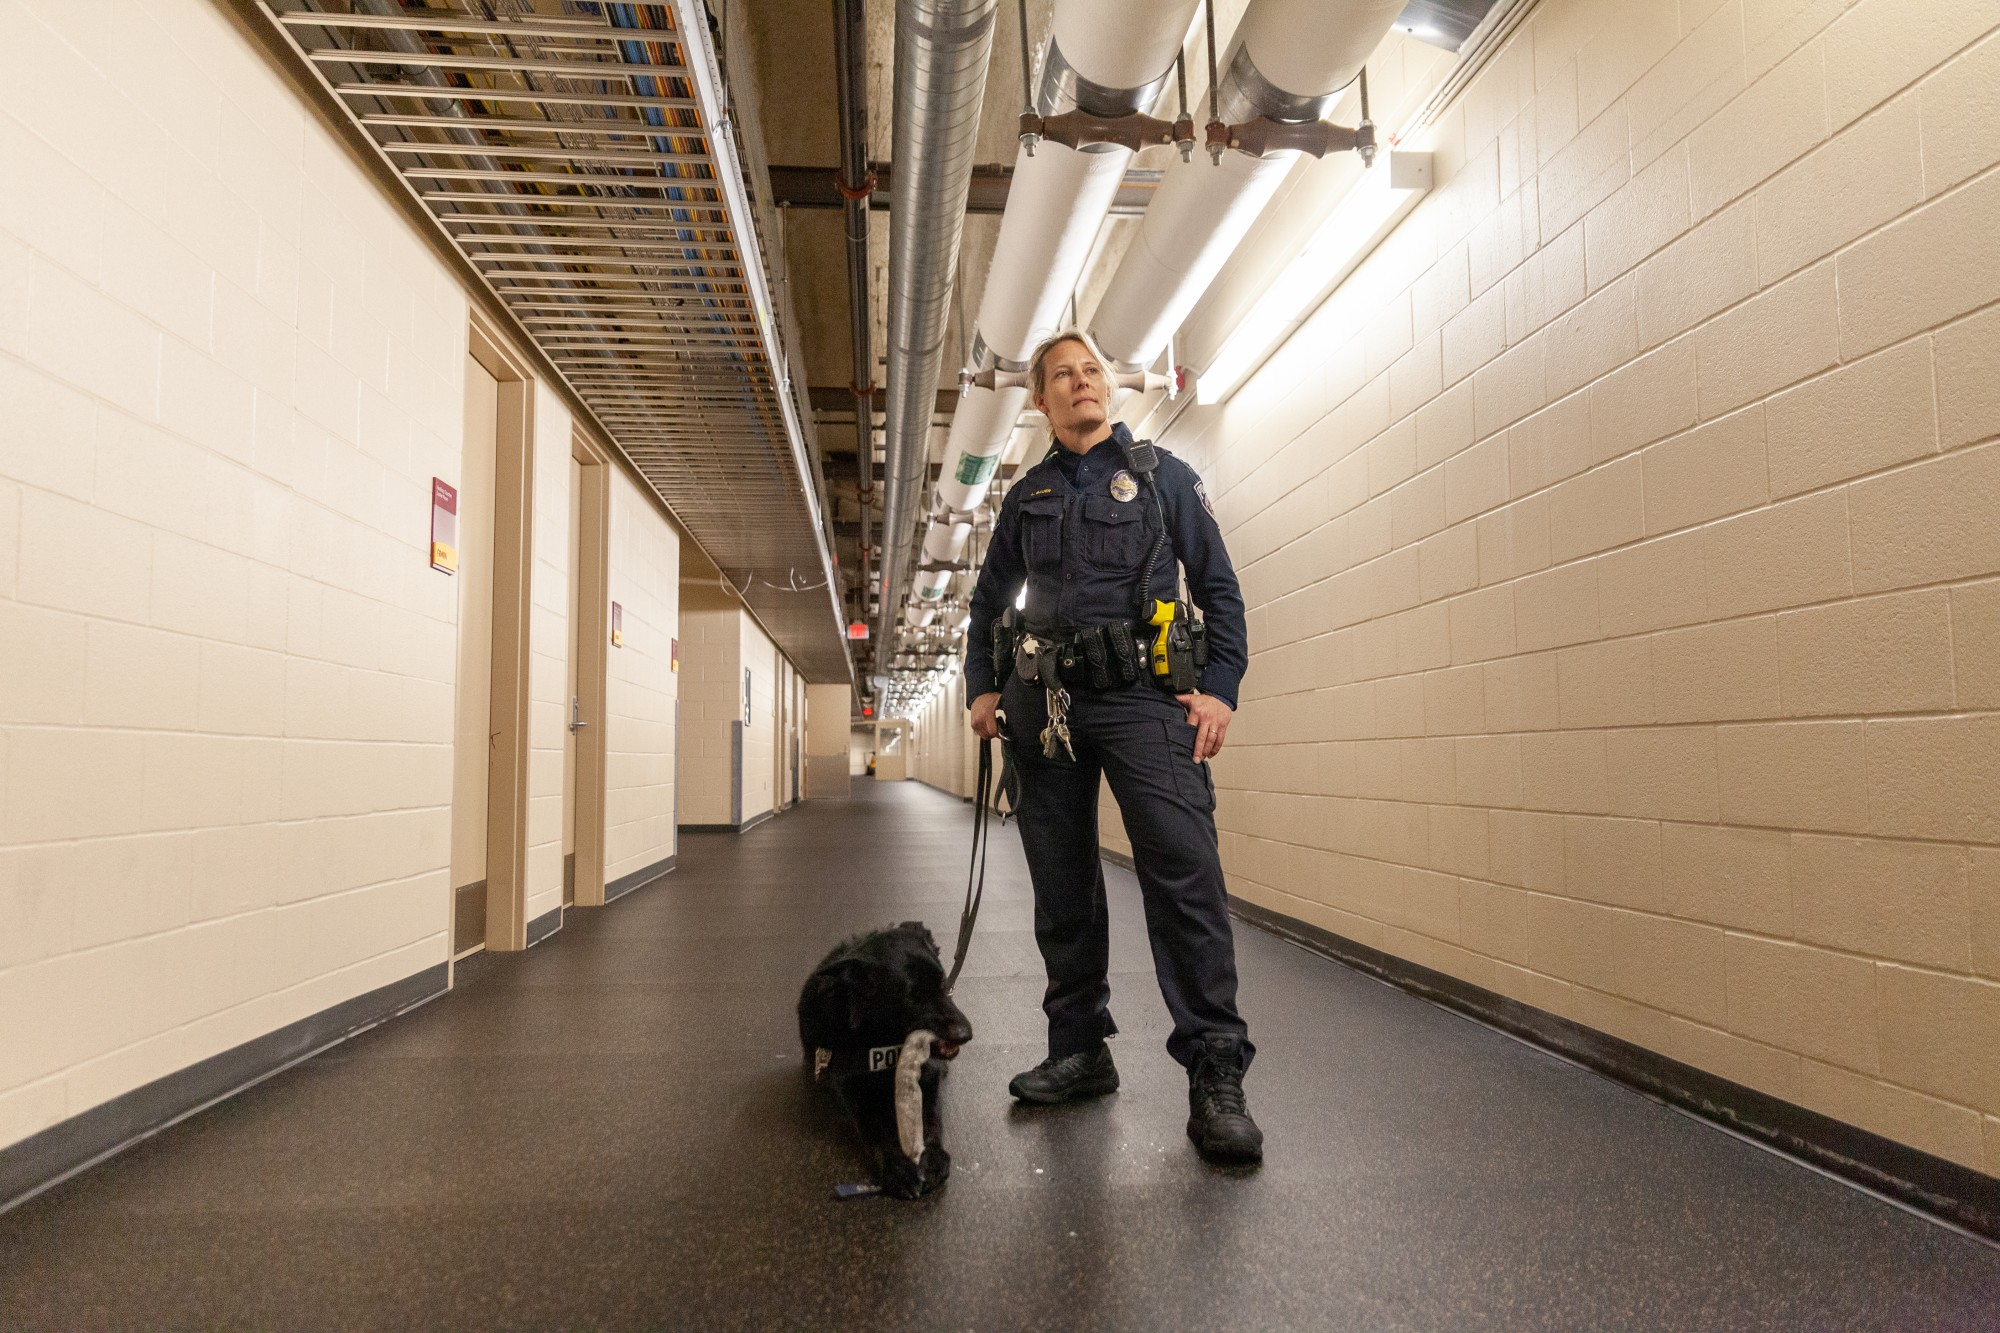 UMPD K-9 Patrol Officer Lara Bauer stands with her dual purpose canine Rio at TCF Bank Stadium on Tuesday, Feb. 25. Prior to serving as a dog handler, Bauer was a member of the University's mounted patrol unit, which was disbanded in 2012.